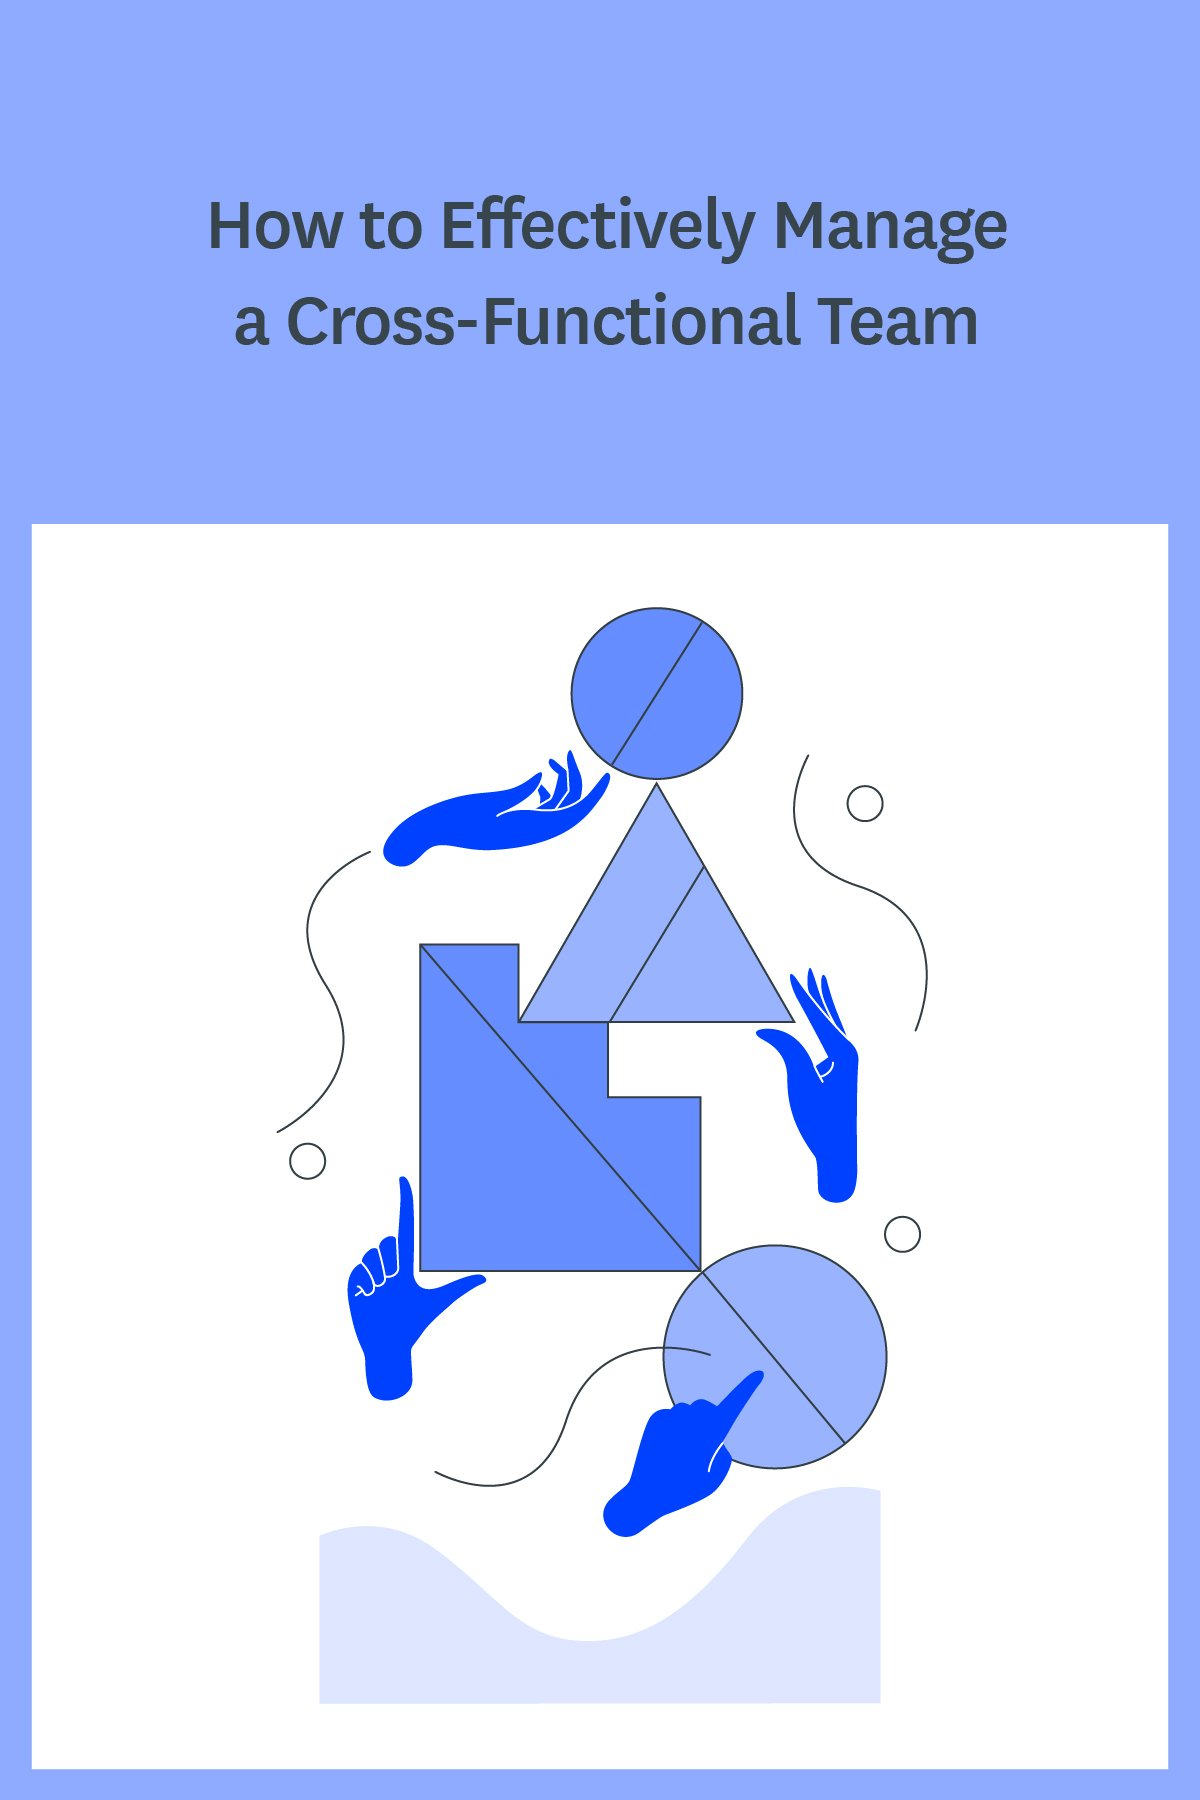 Cross-functional teams can be effective, but only when you manage them well. Click through to read our best management tips to help you manage a cross-functional team.